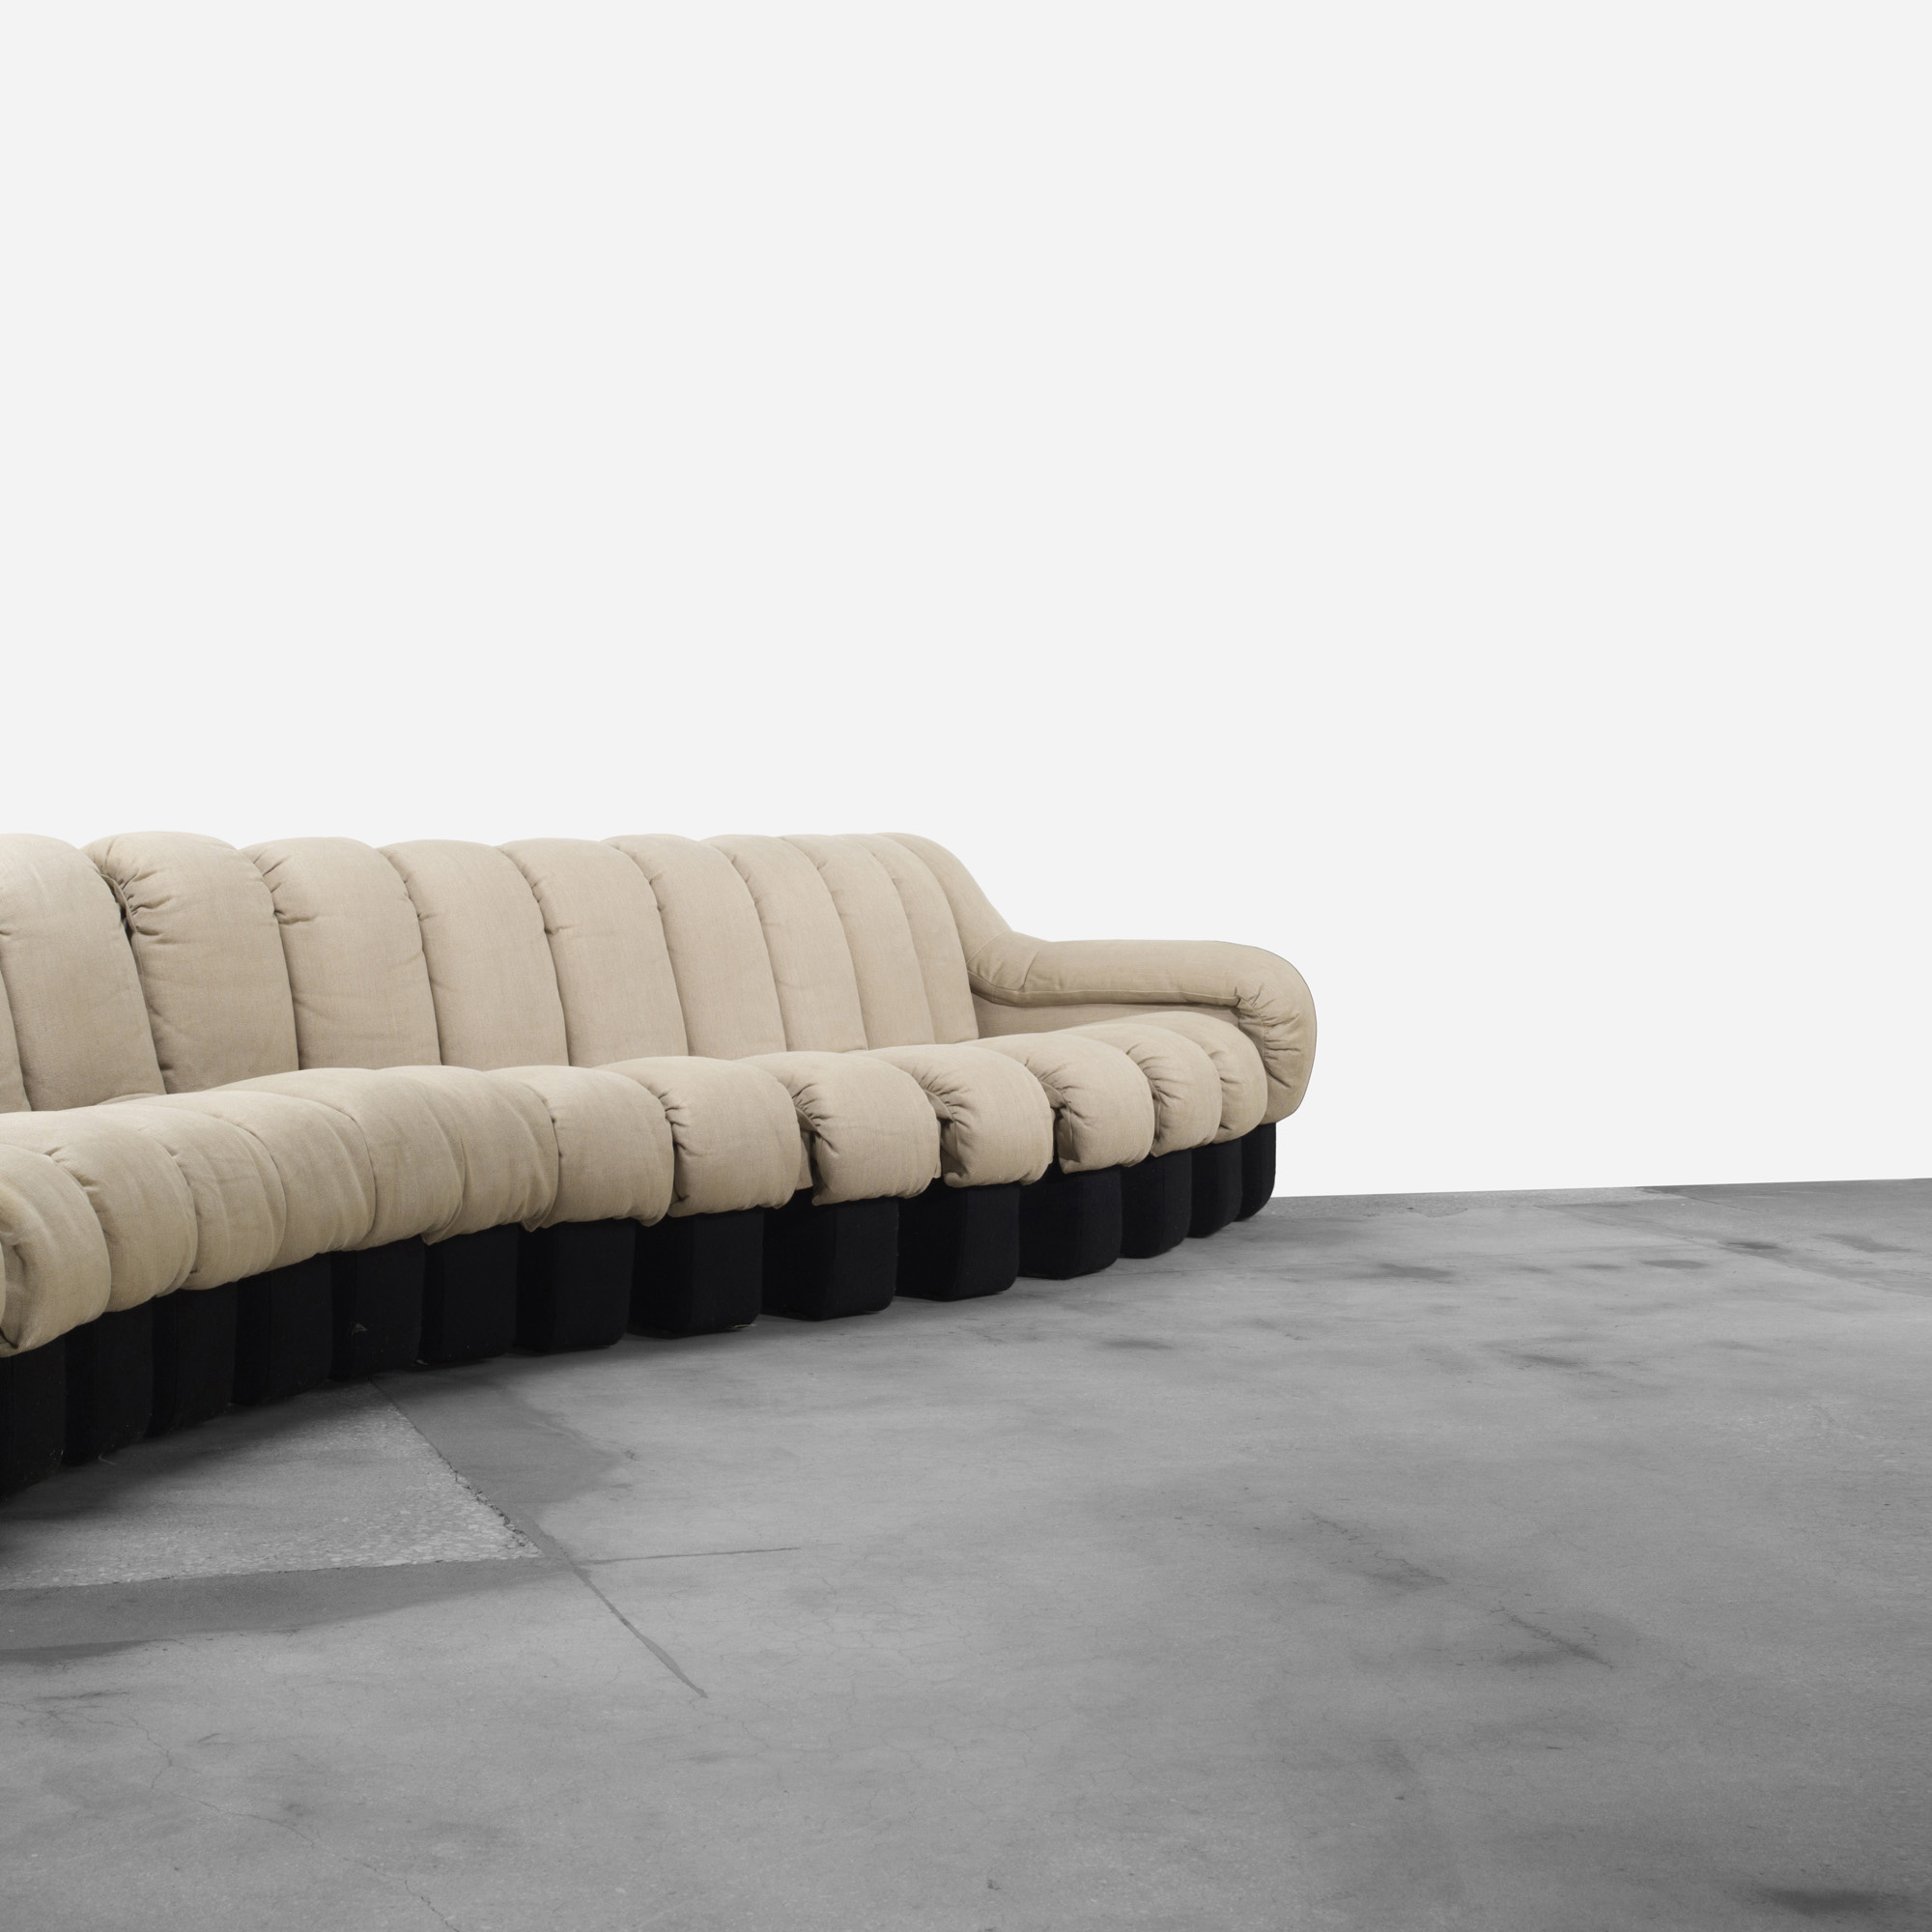 109: Ueli Berger, Eleanora Peduzzi Riva And Heinz Ulrich / DS 600 Organic  Sofa (3 Of 3)